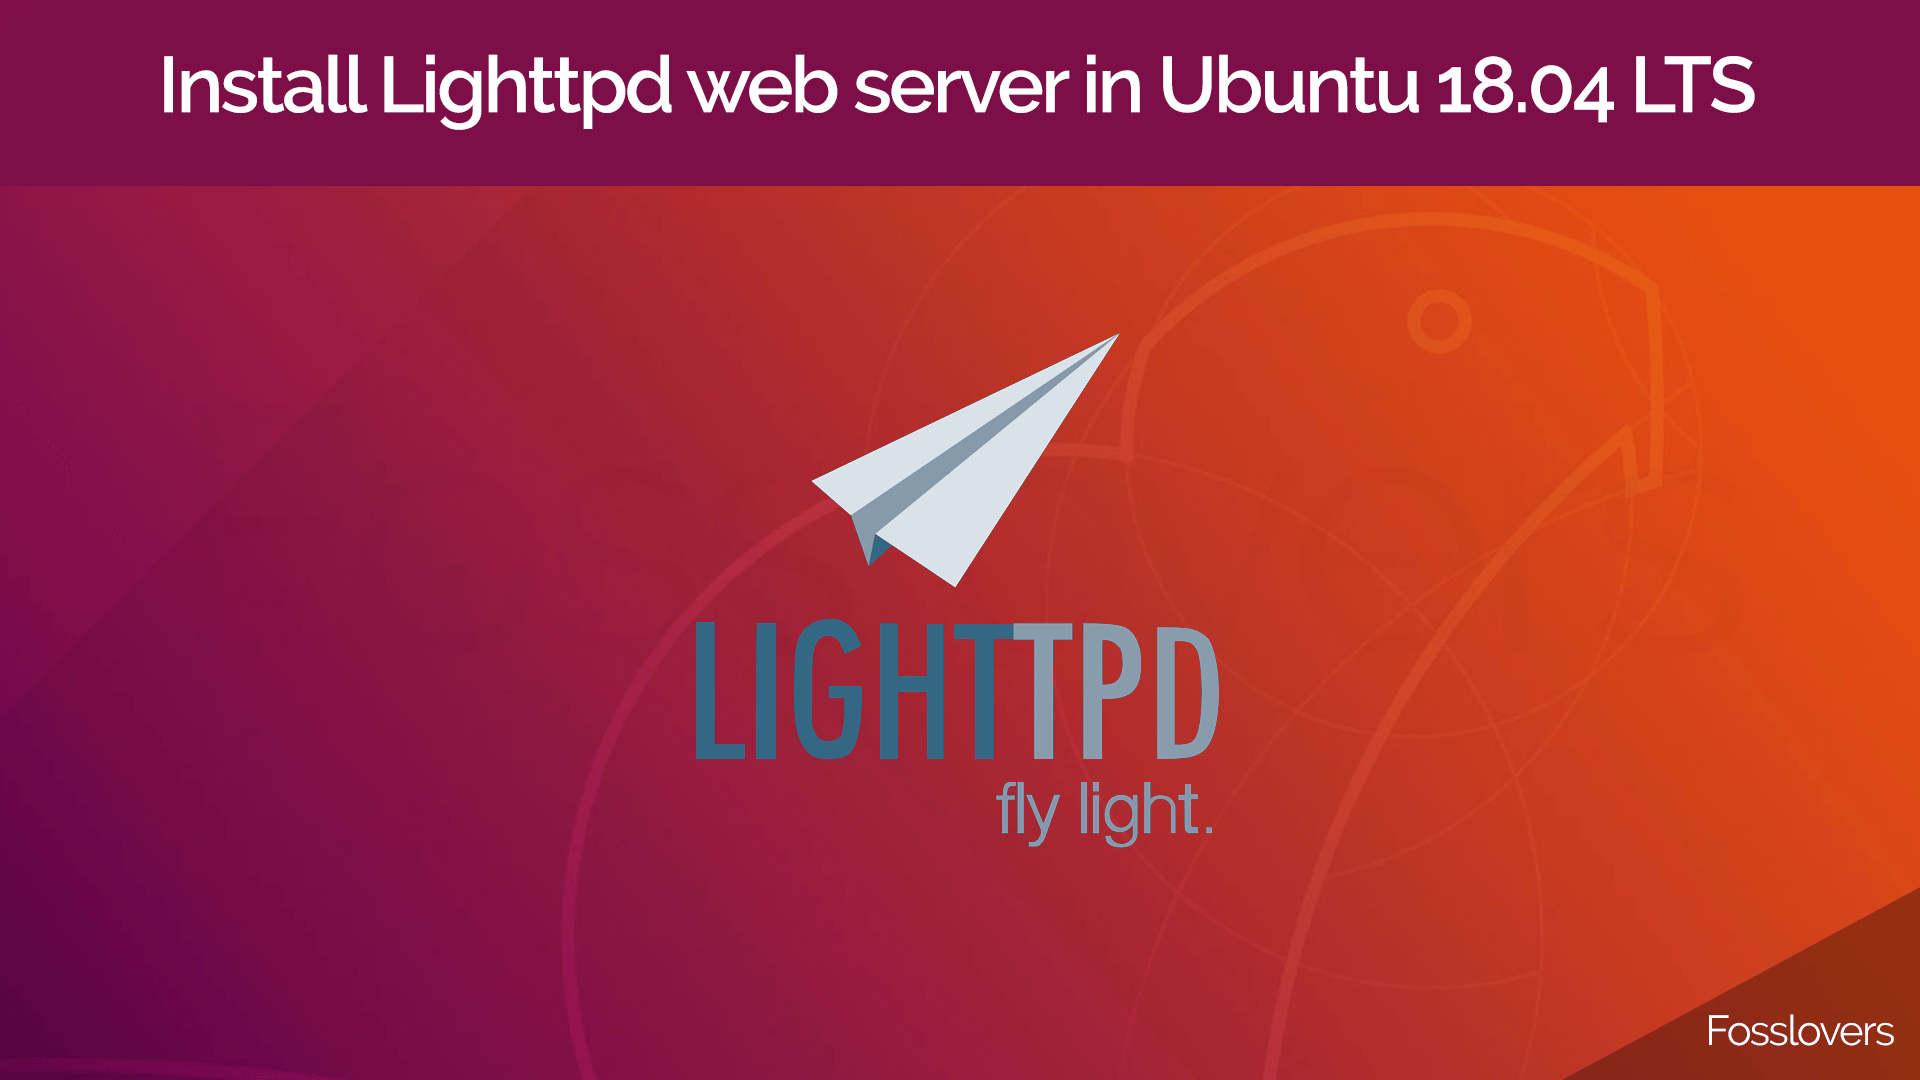 Install Lighttpd web server in Ubuntu 18.04 LTS and CentOS